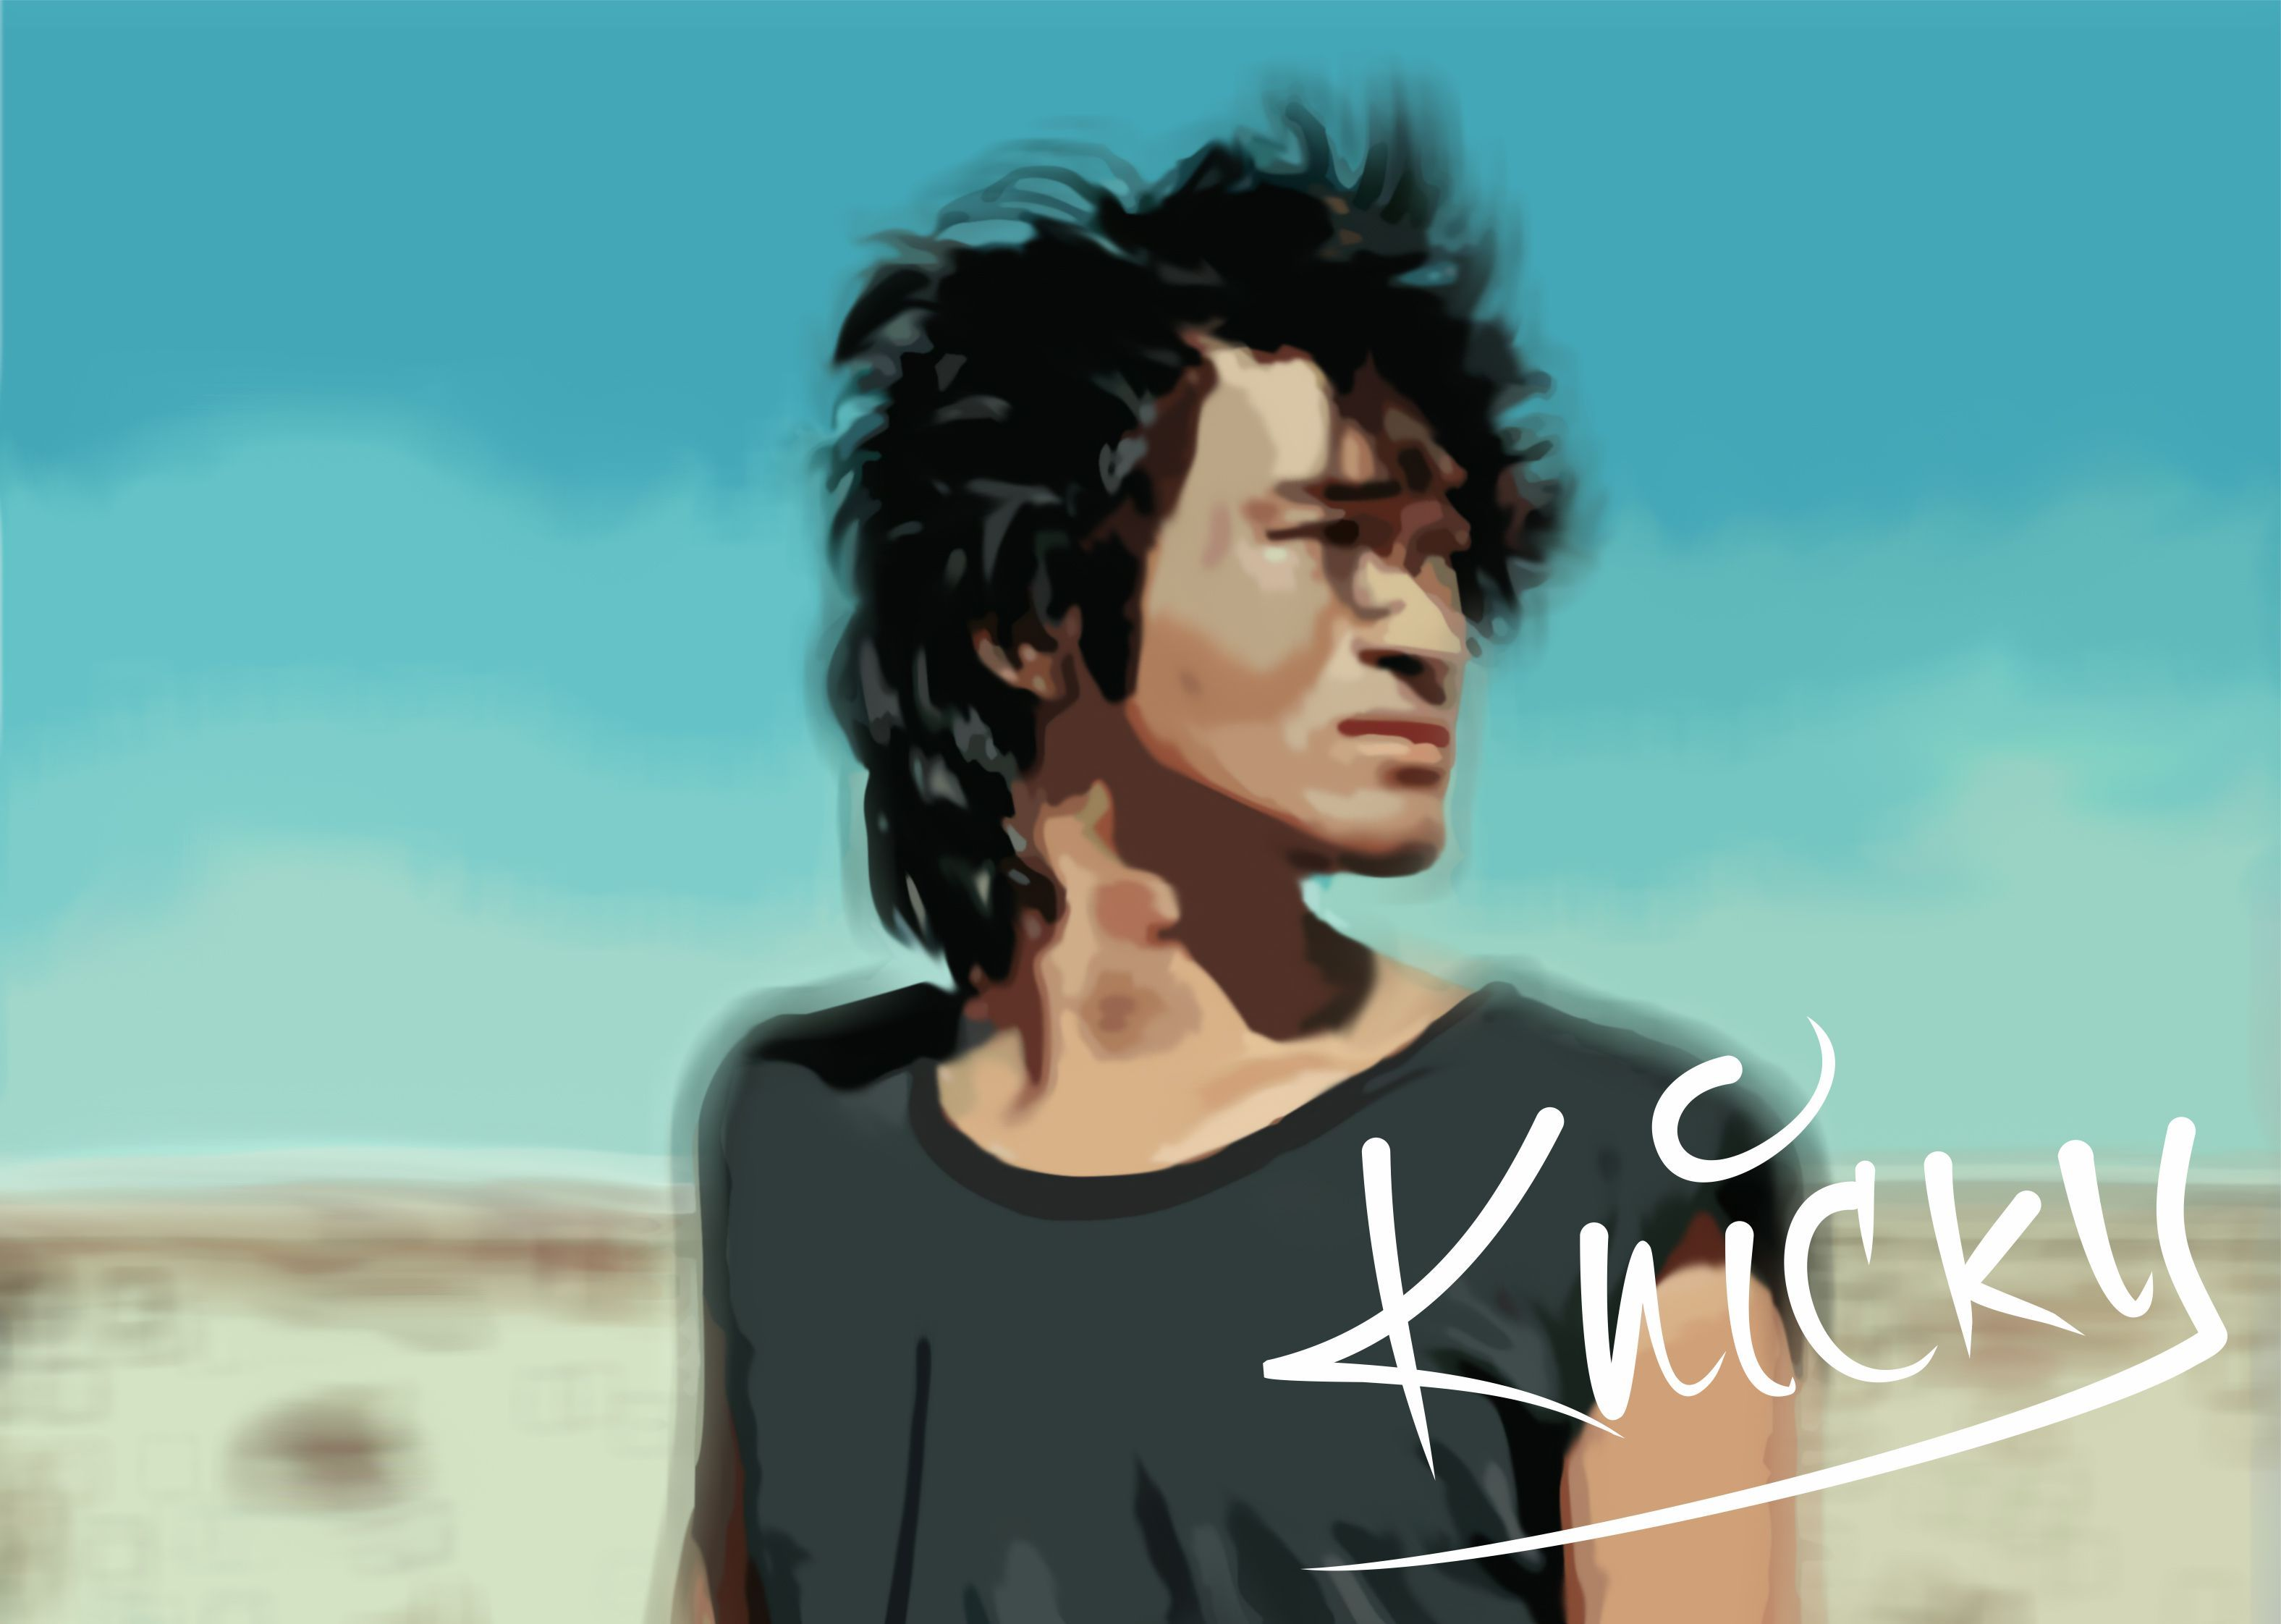 Viktor Tsoi would have turned 56 today